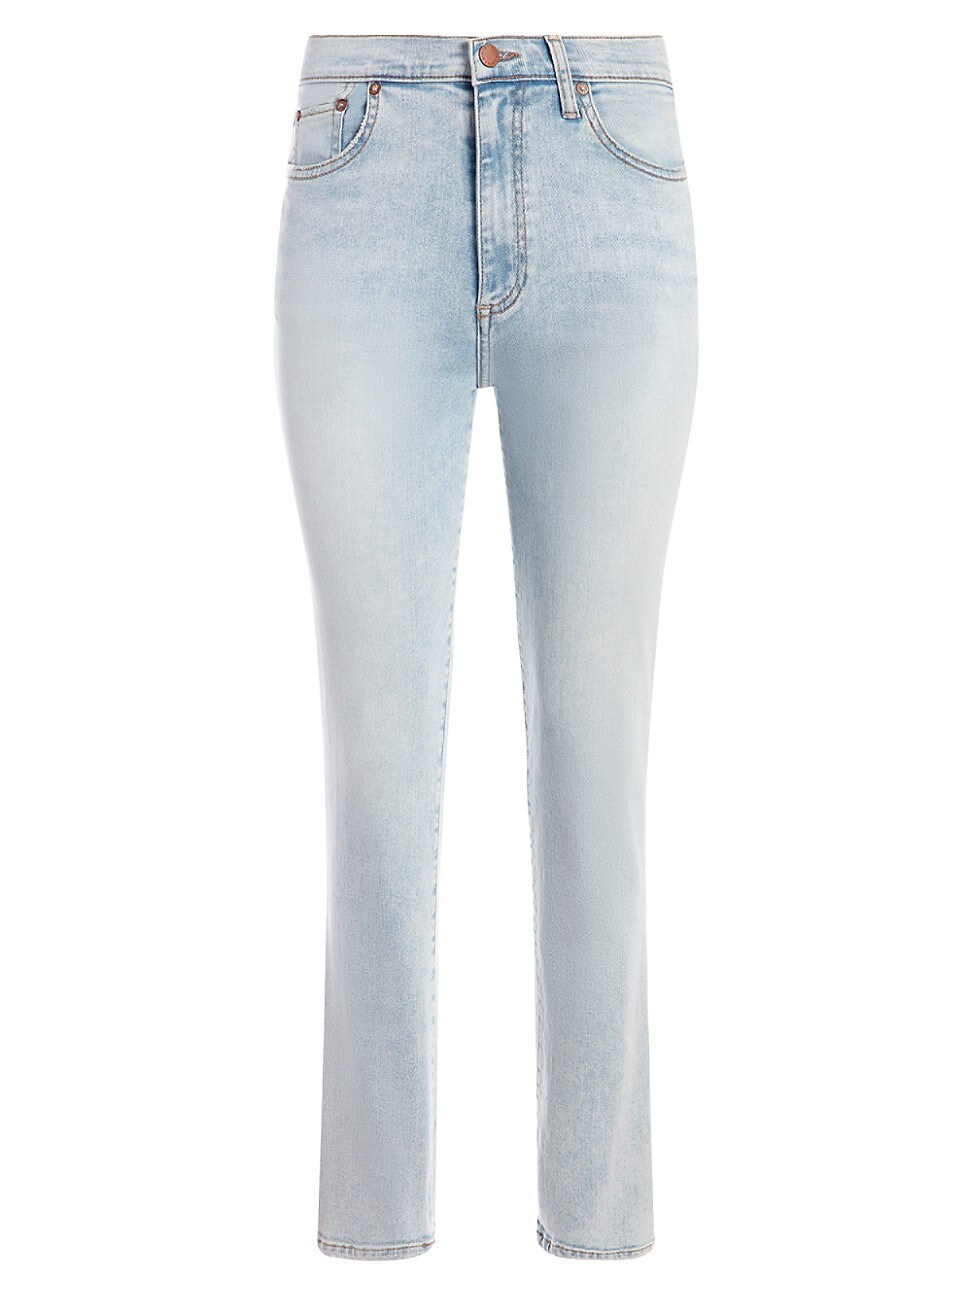 Alice And Olivia WOMEN'S STUNNING HIGH-RISE STRAIGHT JEANS